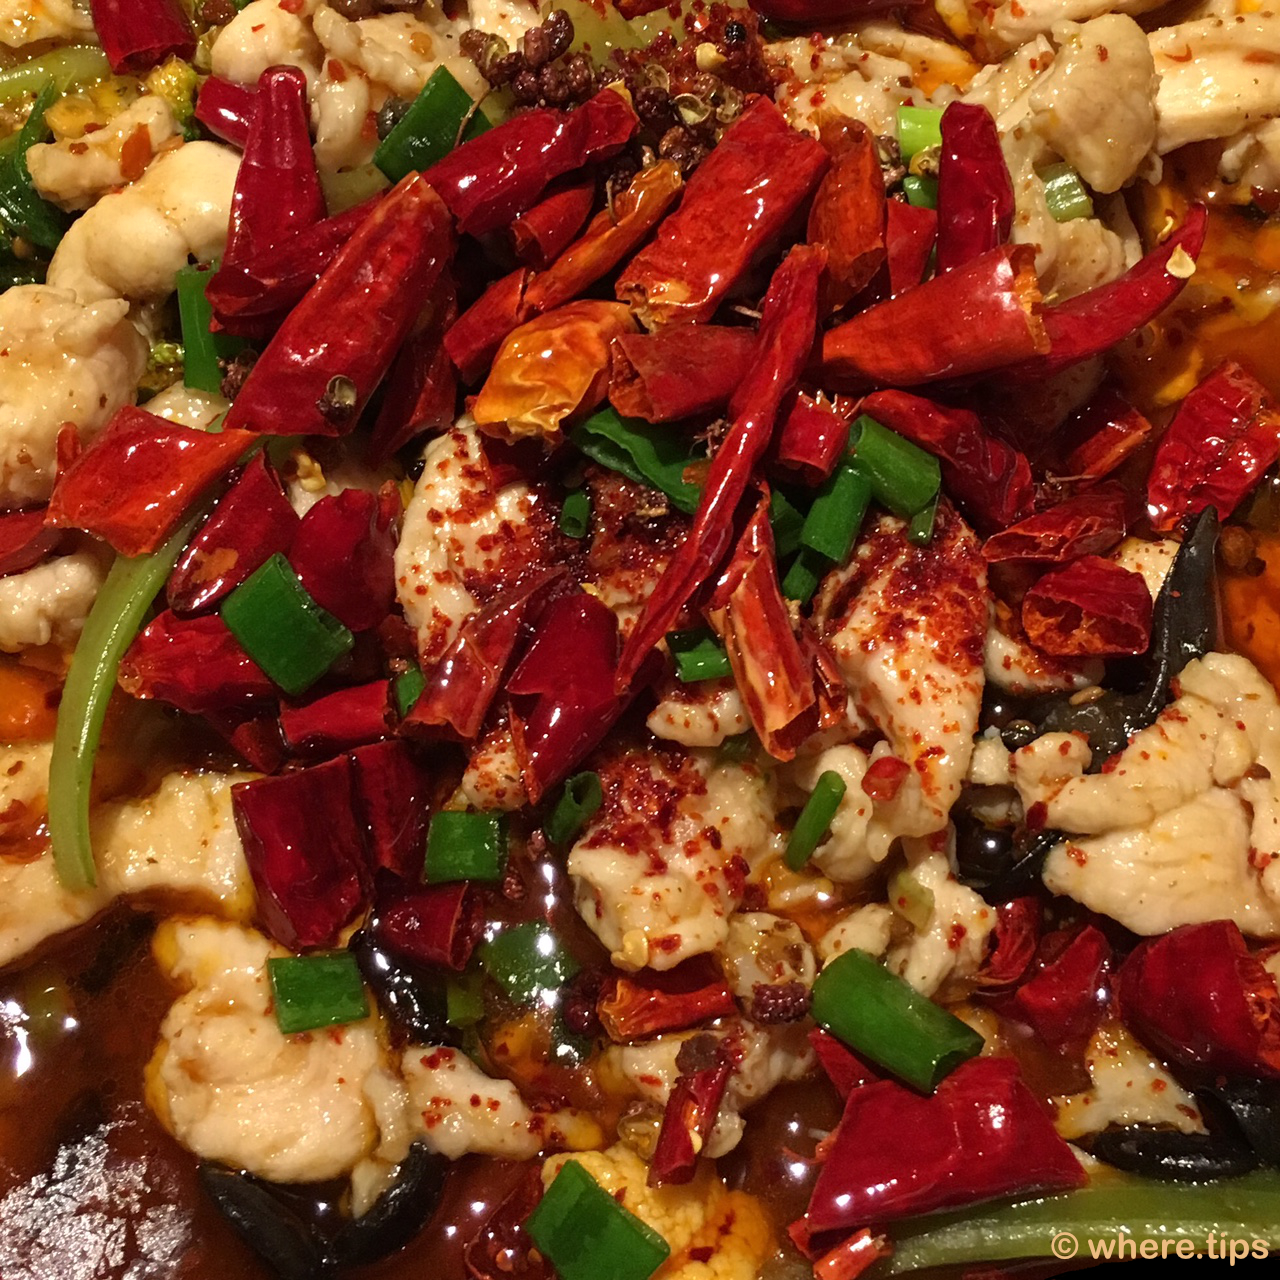 Chili chicken, China Sichuan Restaurant, Amsterdam by where.tips